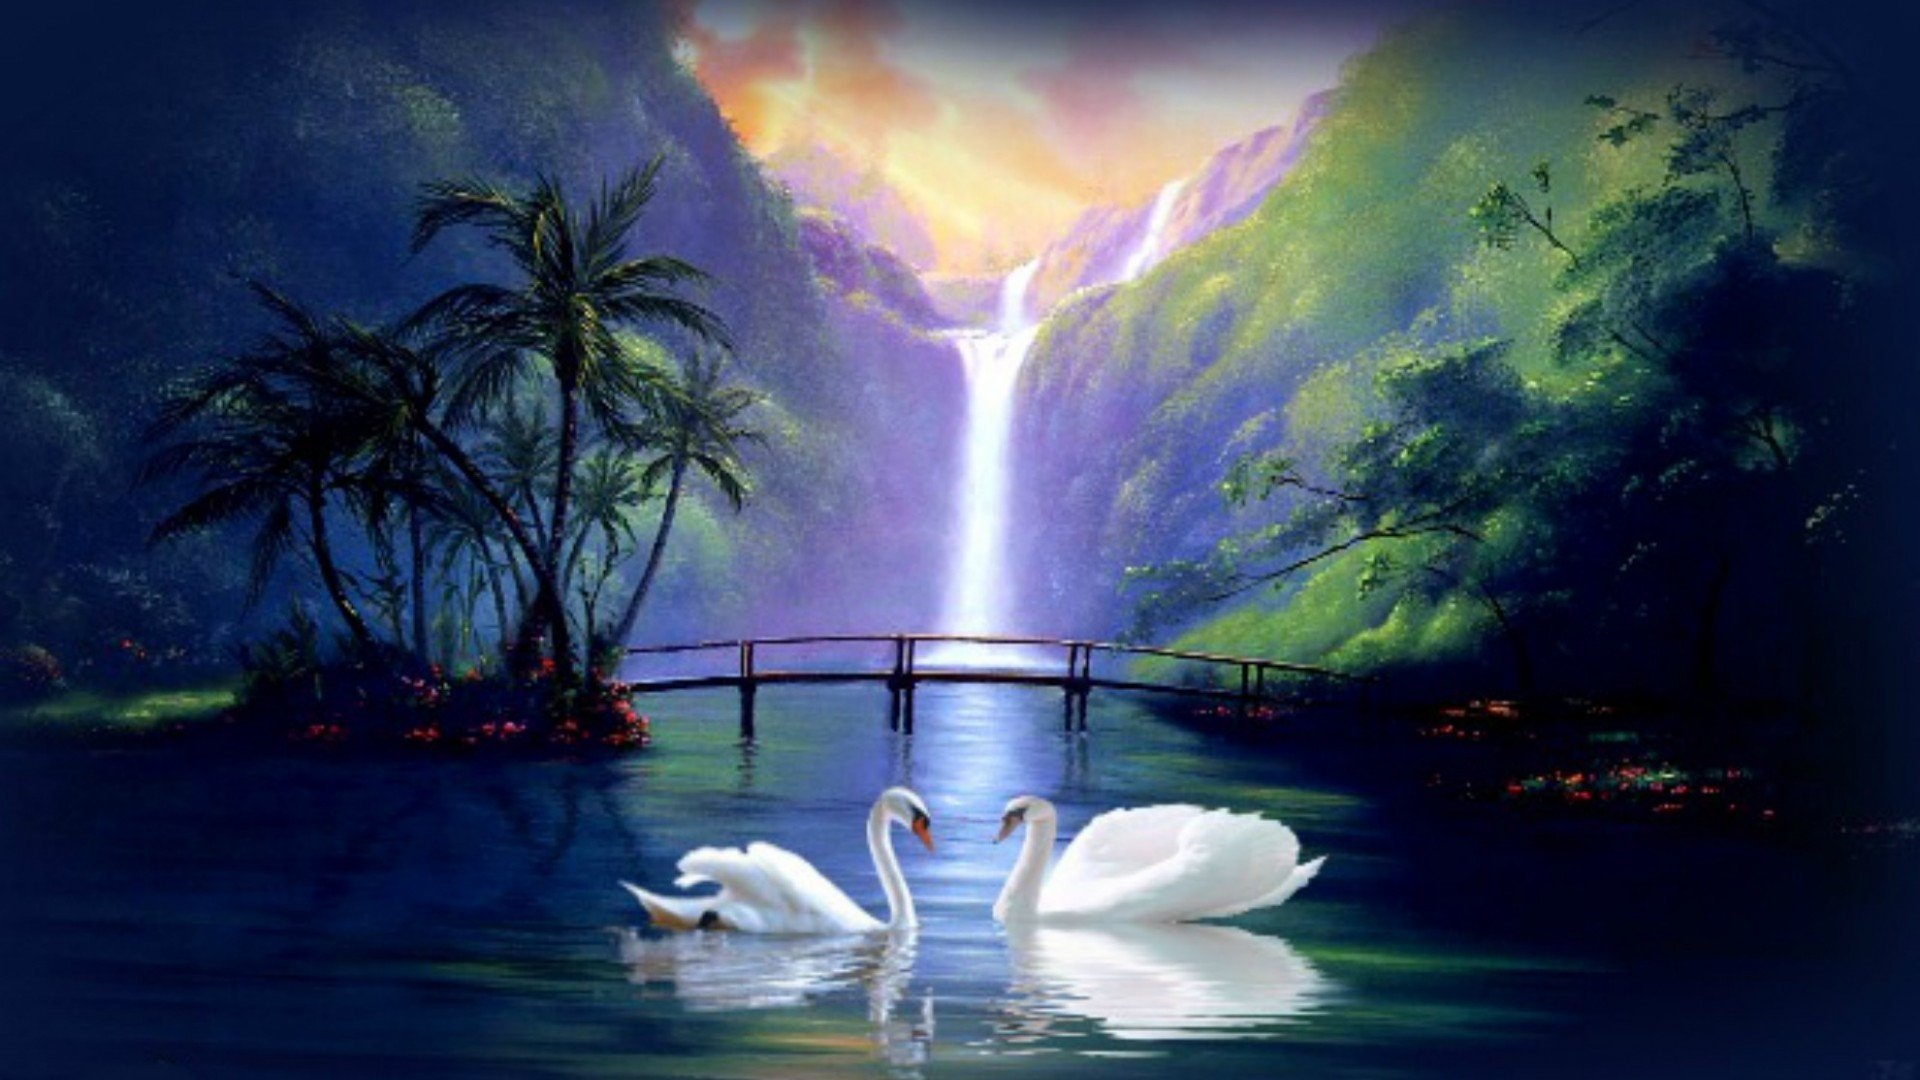 Swan love waterfall fantasy wallpaper 1920x1080 421606 WallpaperUP